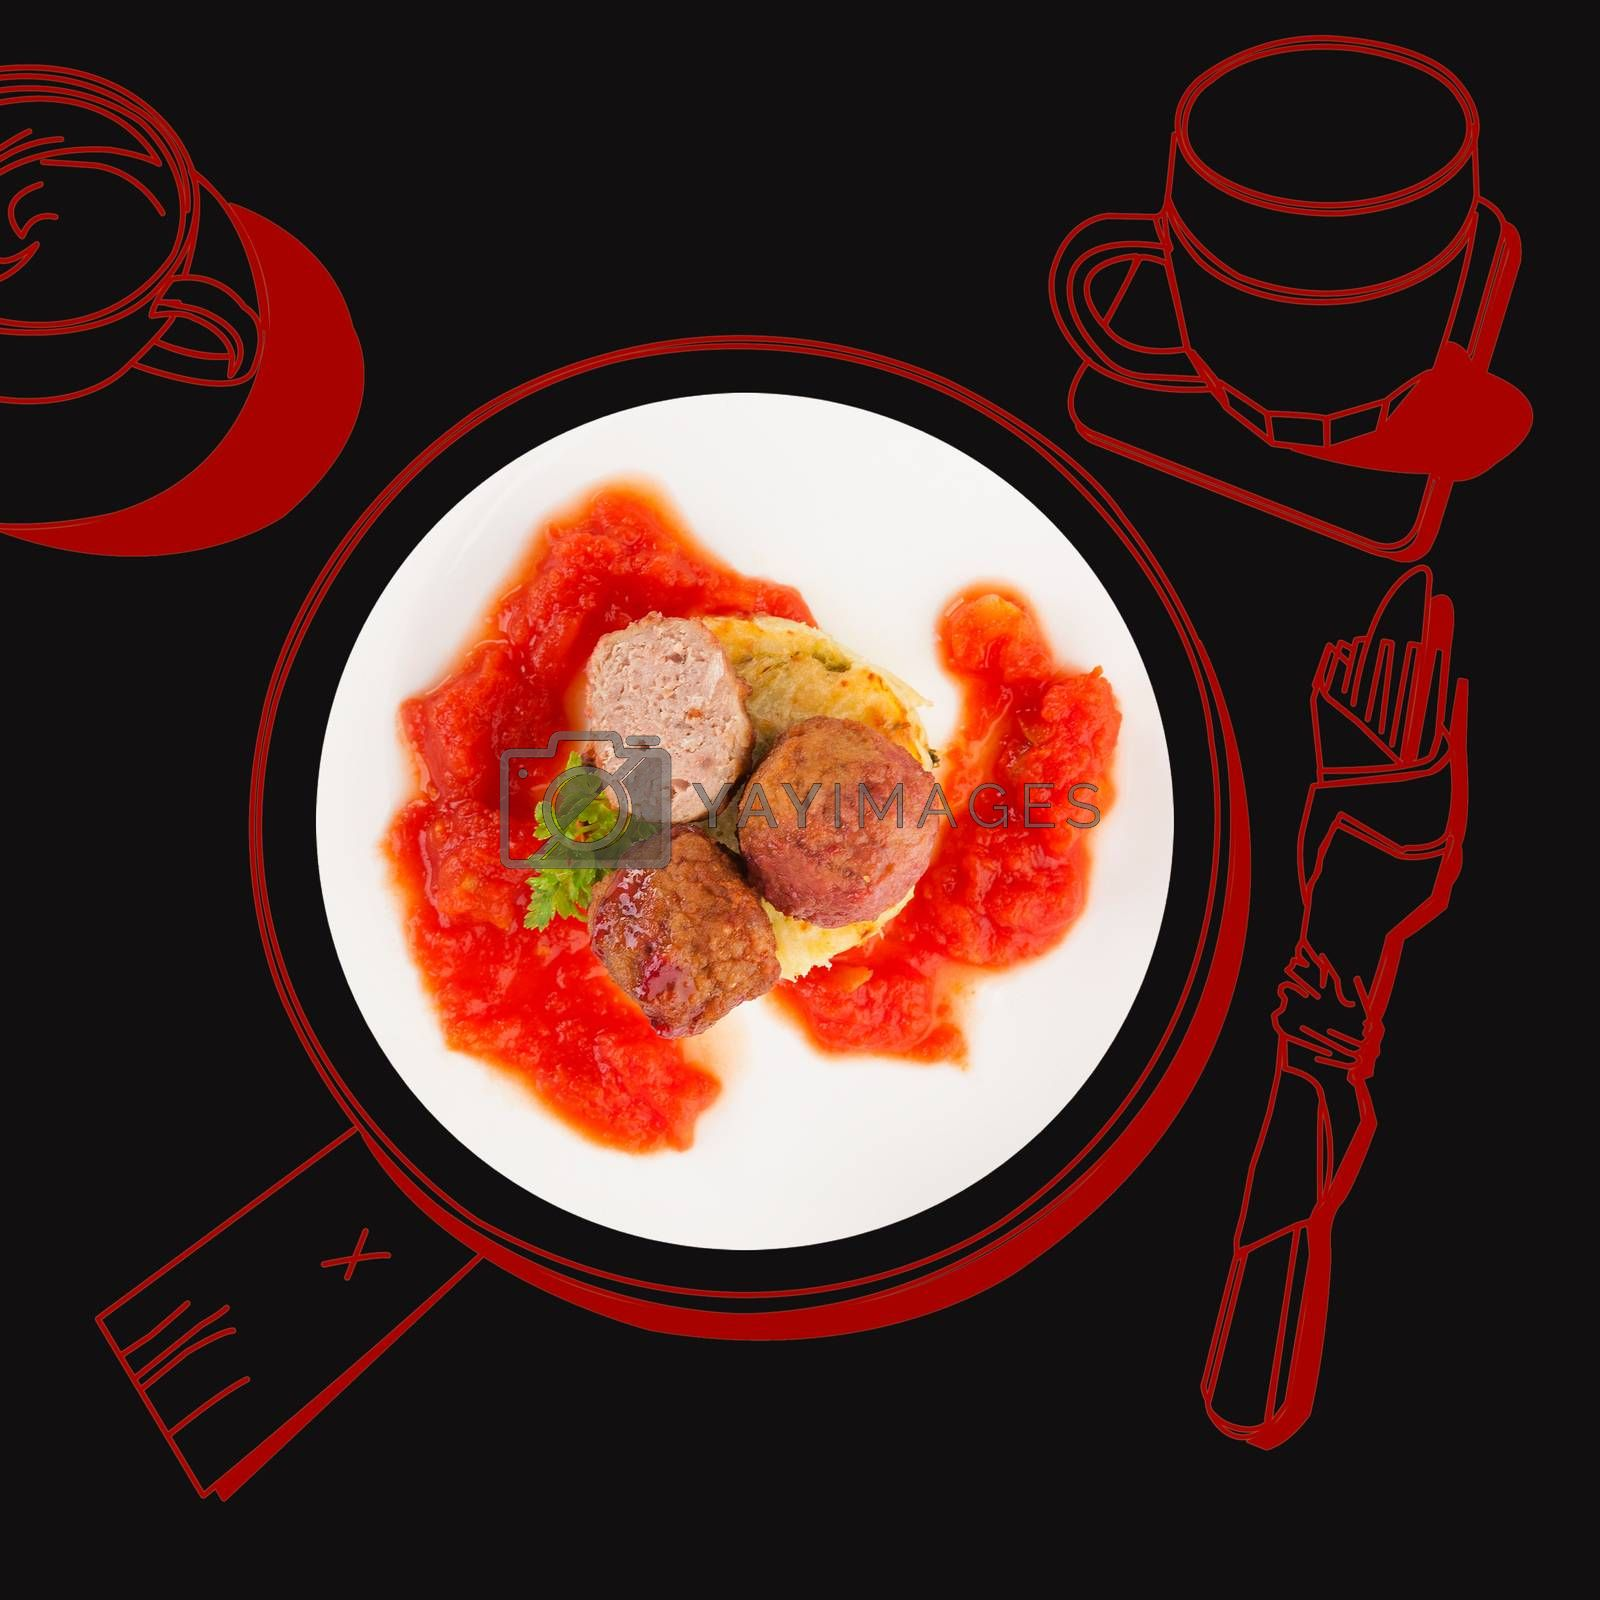 Delicious meatballs. Fine dining, exquisite luxurious gastronomy background.